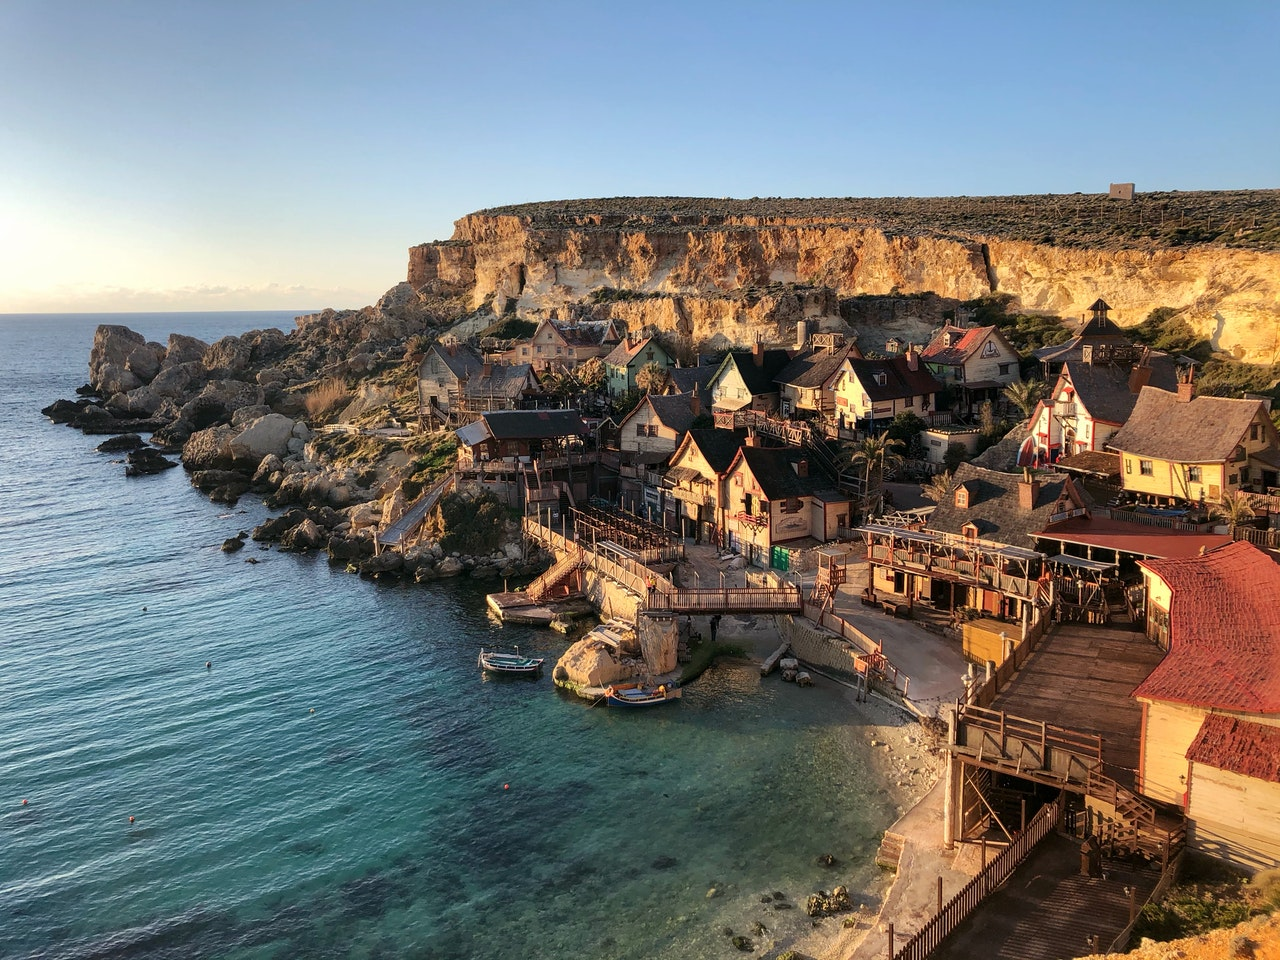 Conducting an overseas fieldtrip online: how the Geography Programme 'visited' Malta without leaving the UK